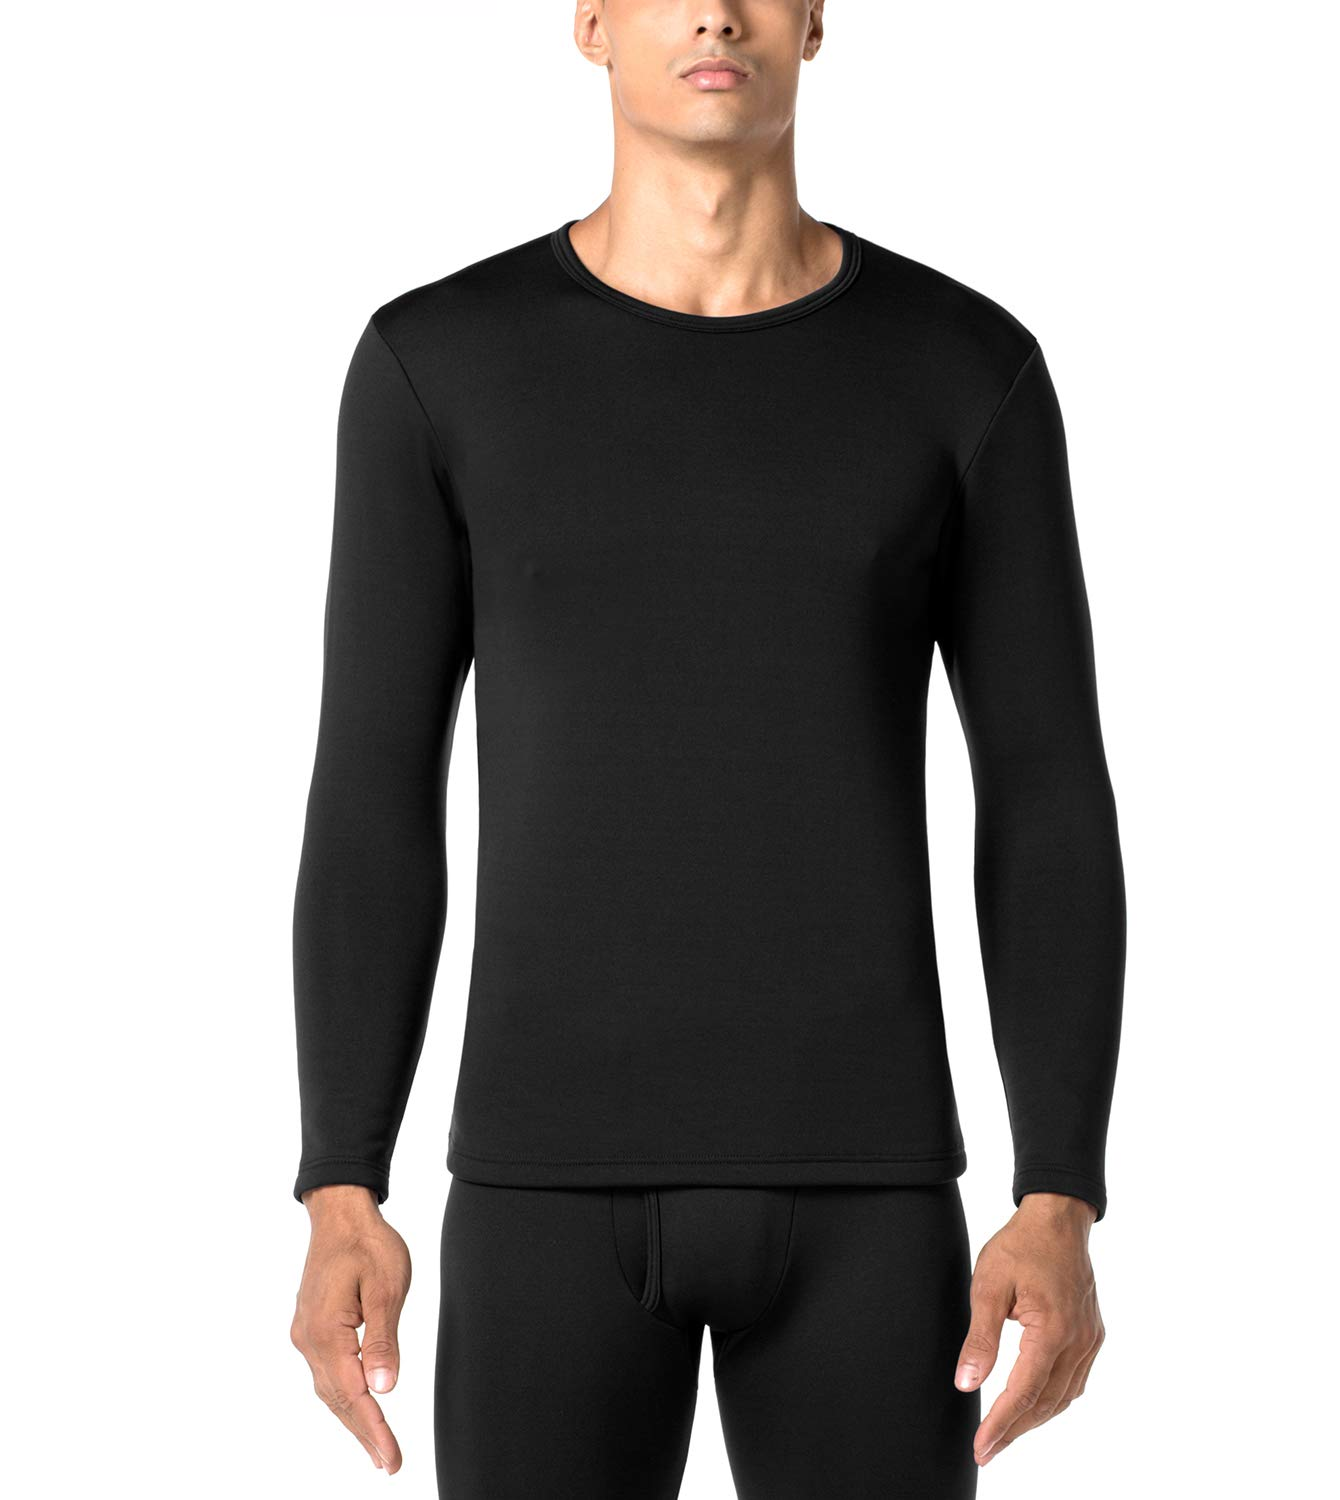 LAPASA Men's Heavyweight Thermal Underwear Top Fleece Lined Base Layer Long Sleeve Shirt M26 (Black, X-Large) by LAPASA